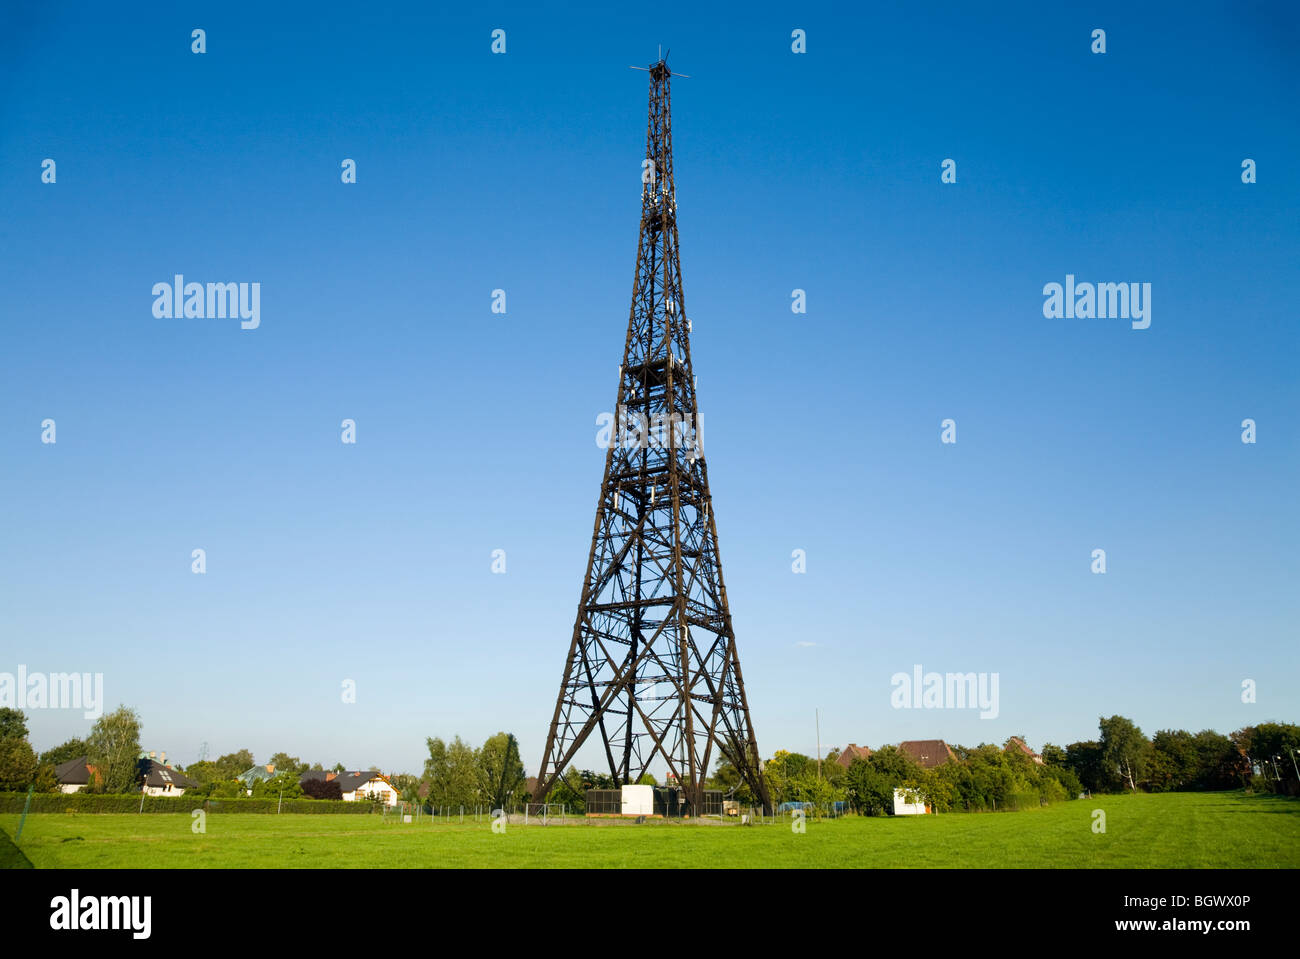 The Gliwice Radio Tower transmission tower of Gliwice, Upper Silesia, Poland, Stock Photo